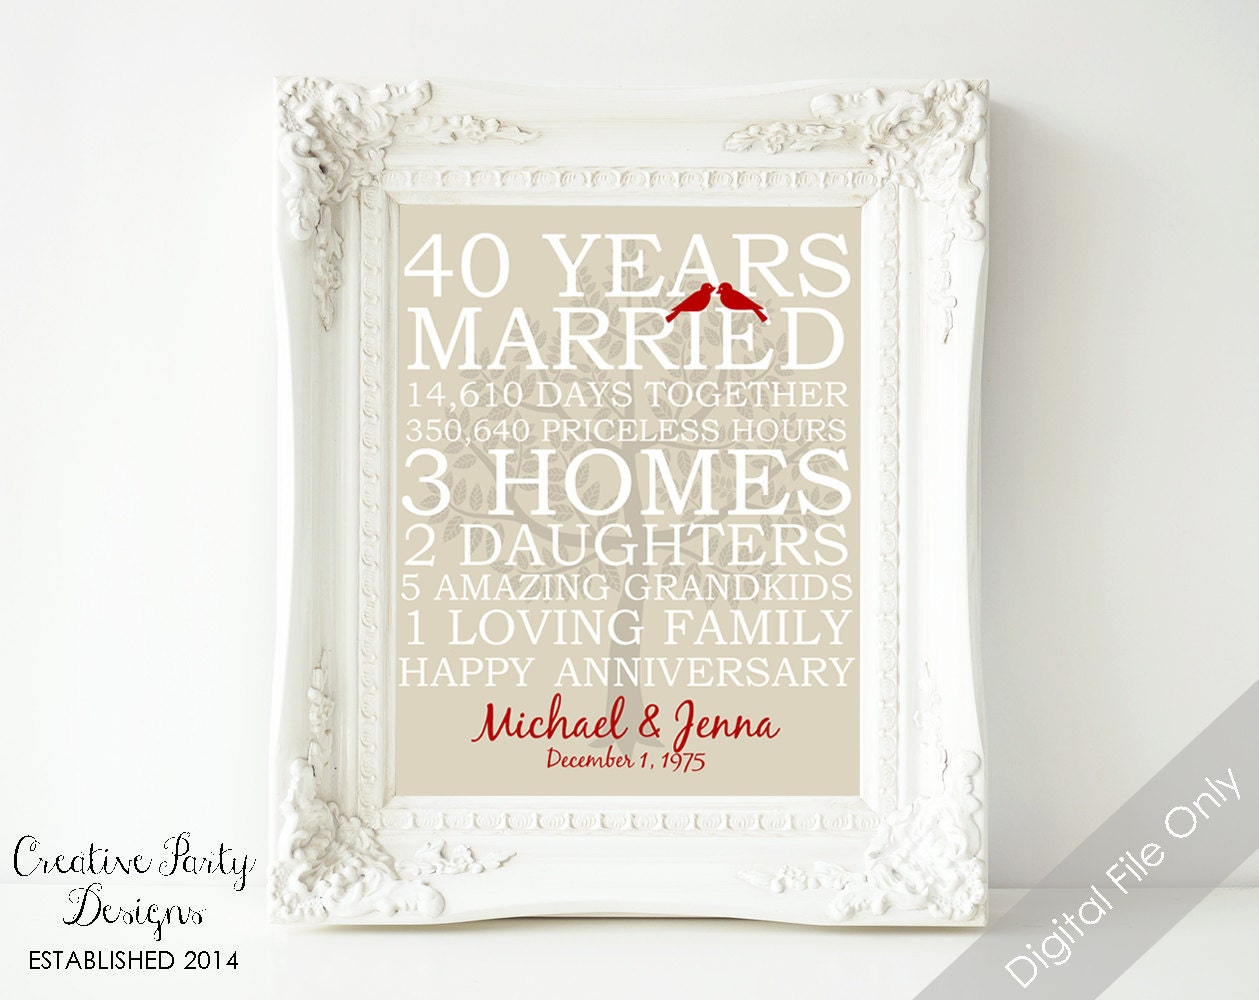 40th Wedding Anniversary Gifts For Husband: Anniversary Gift For Parents Personalized Gift For Husband